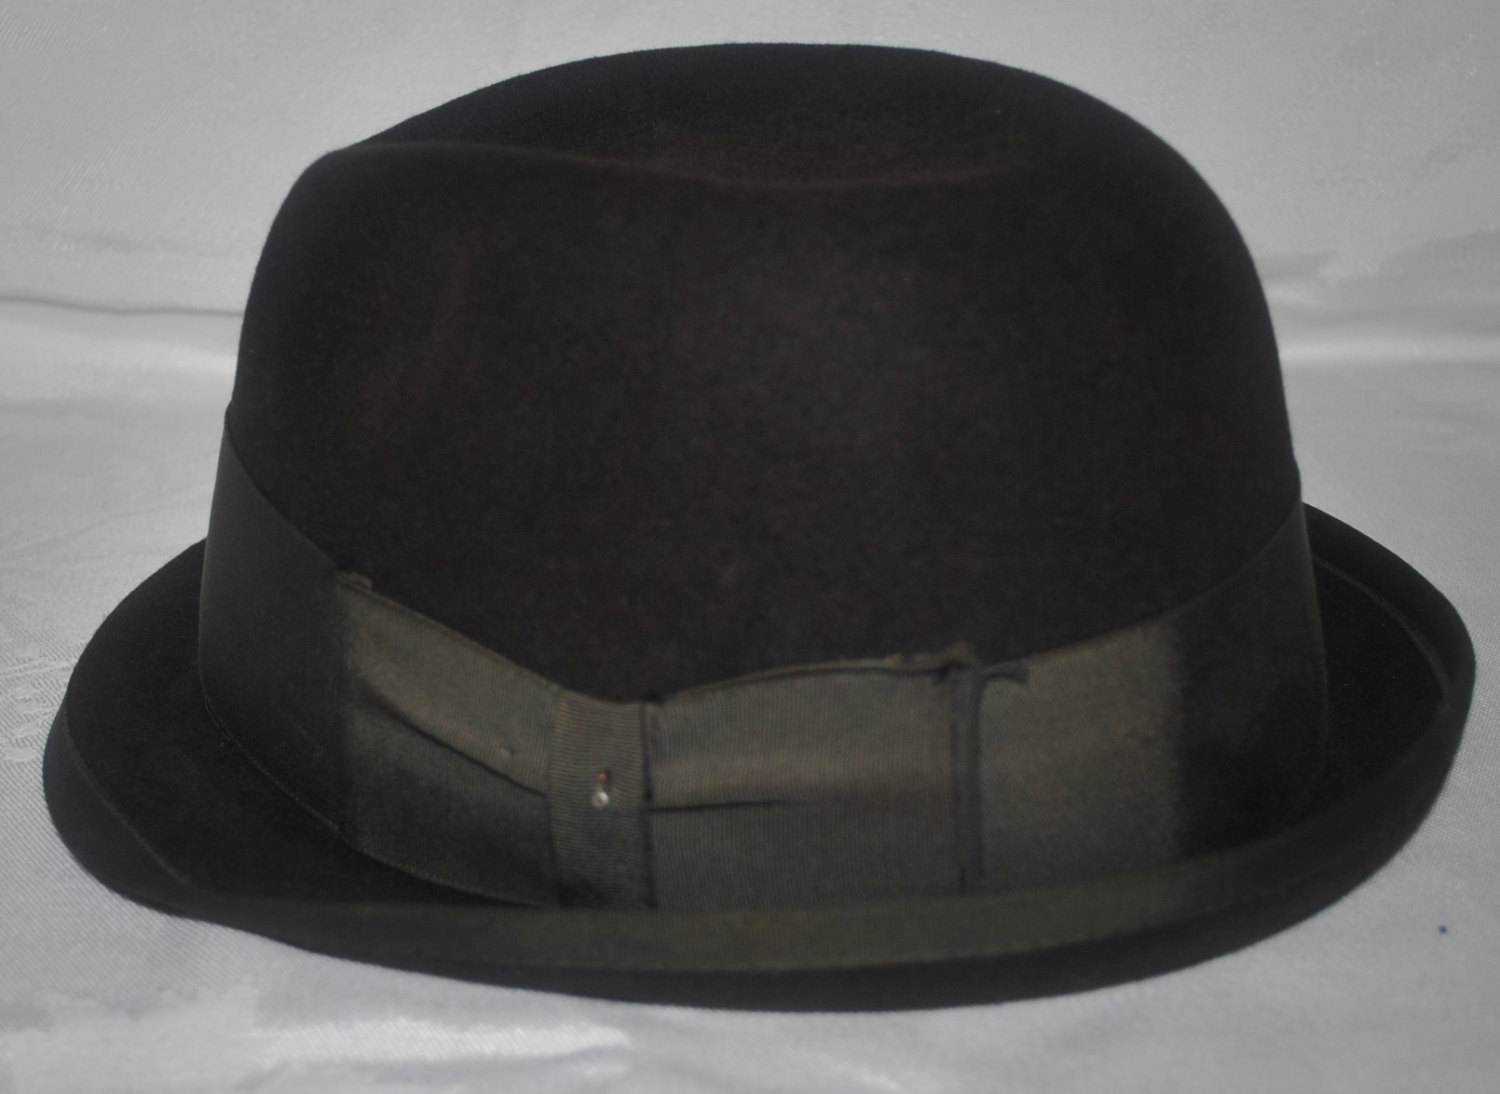 28951b0790a22 Vintage Resistol Self Conforming Fedora Fur and 50 similar items. Il  fullxfull.1042375736 5cxx